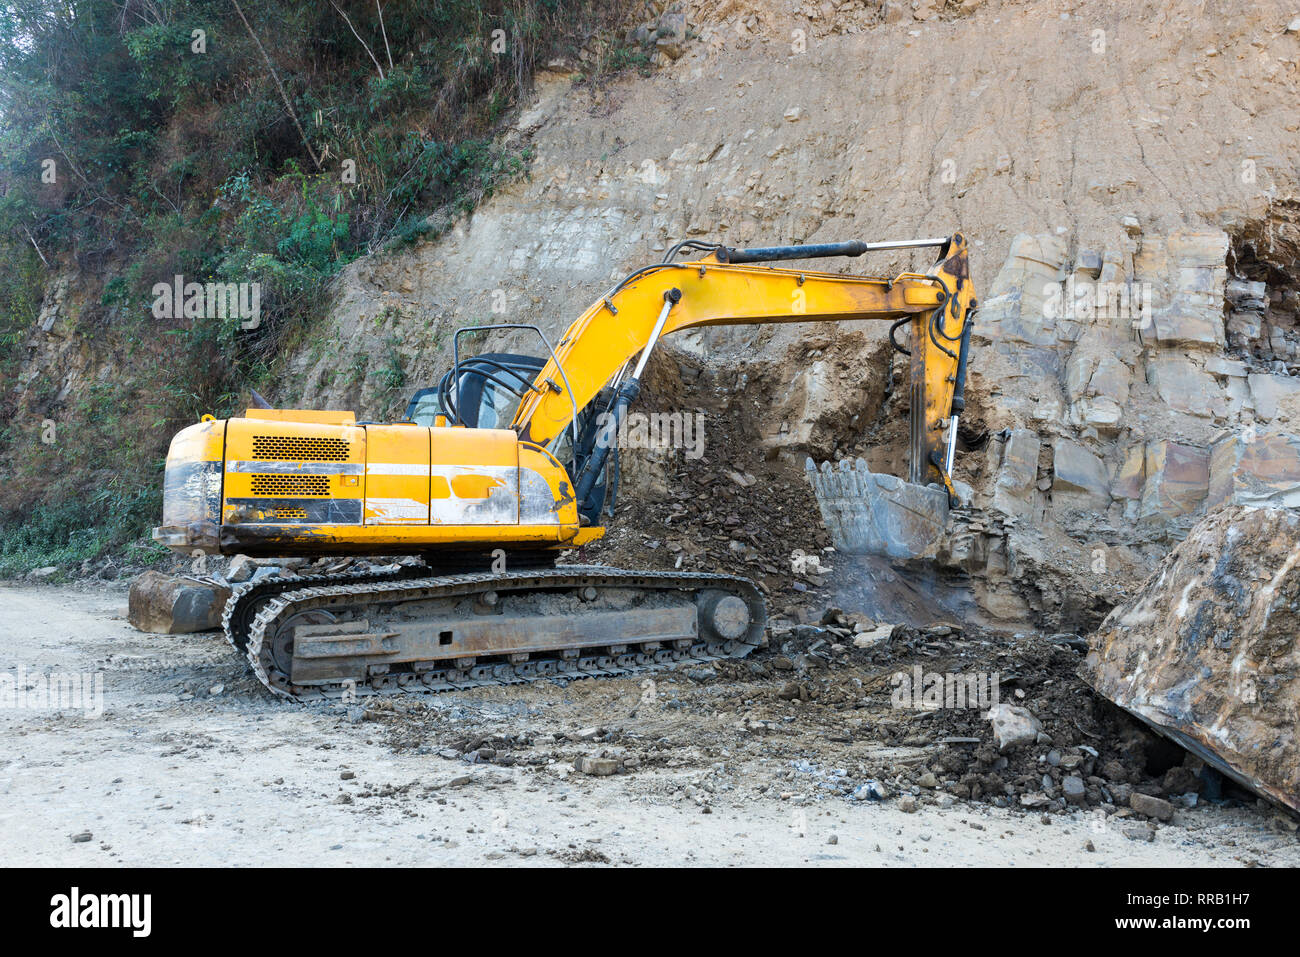 hight resolution of an excavator digs and collects soil and stone for a road widening project